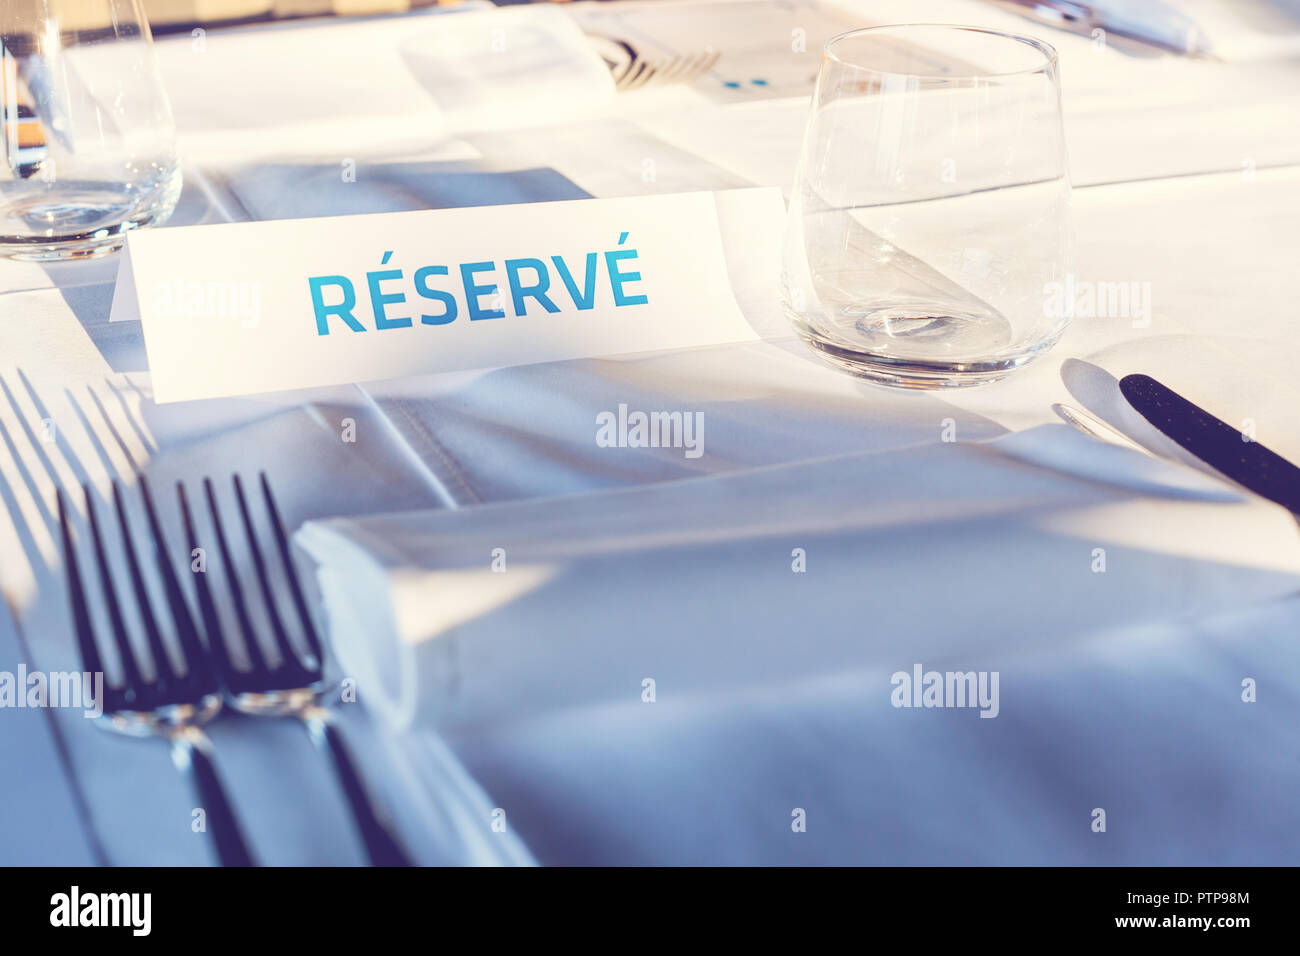 Reserved Table. A tag of reservation placed on the wood table. Reserved logo. Reservation sign. Paper tag with reservation logo. Reserved table in a r - Stock Image